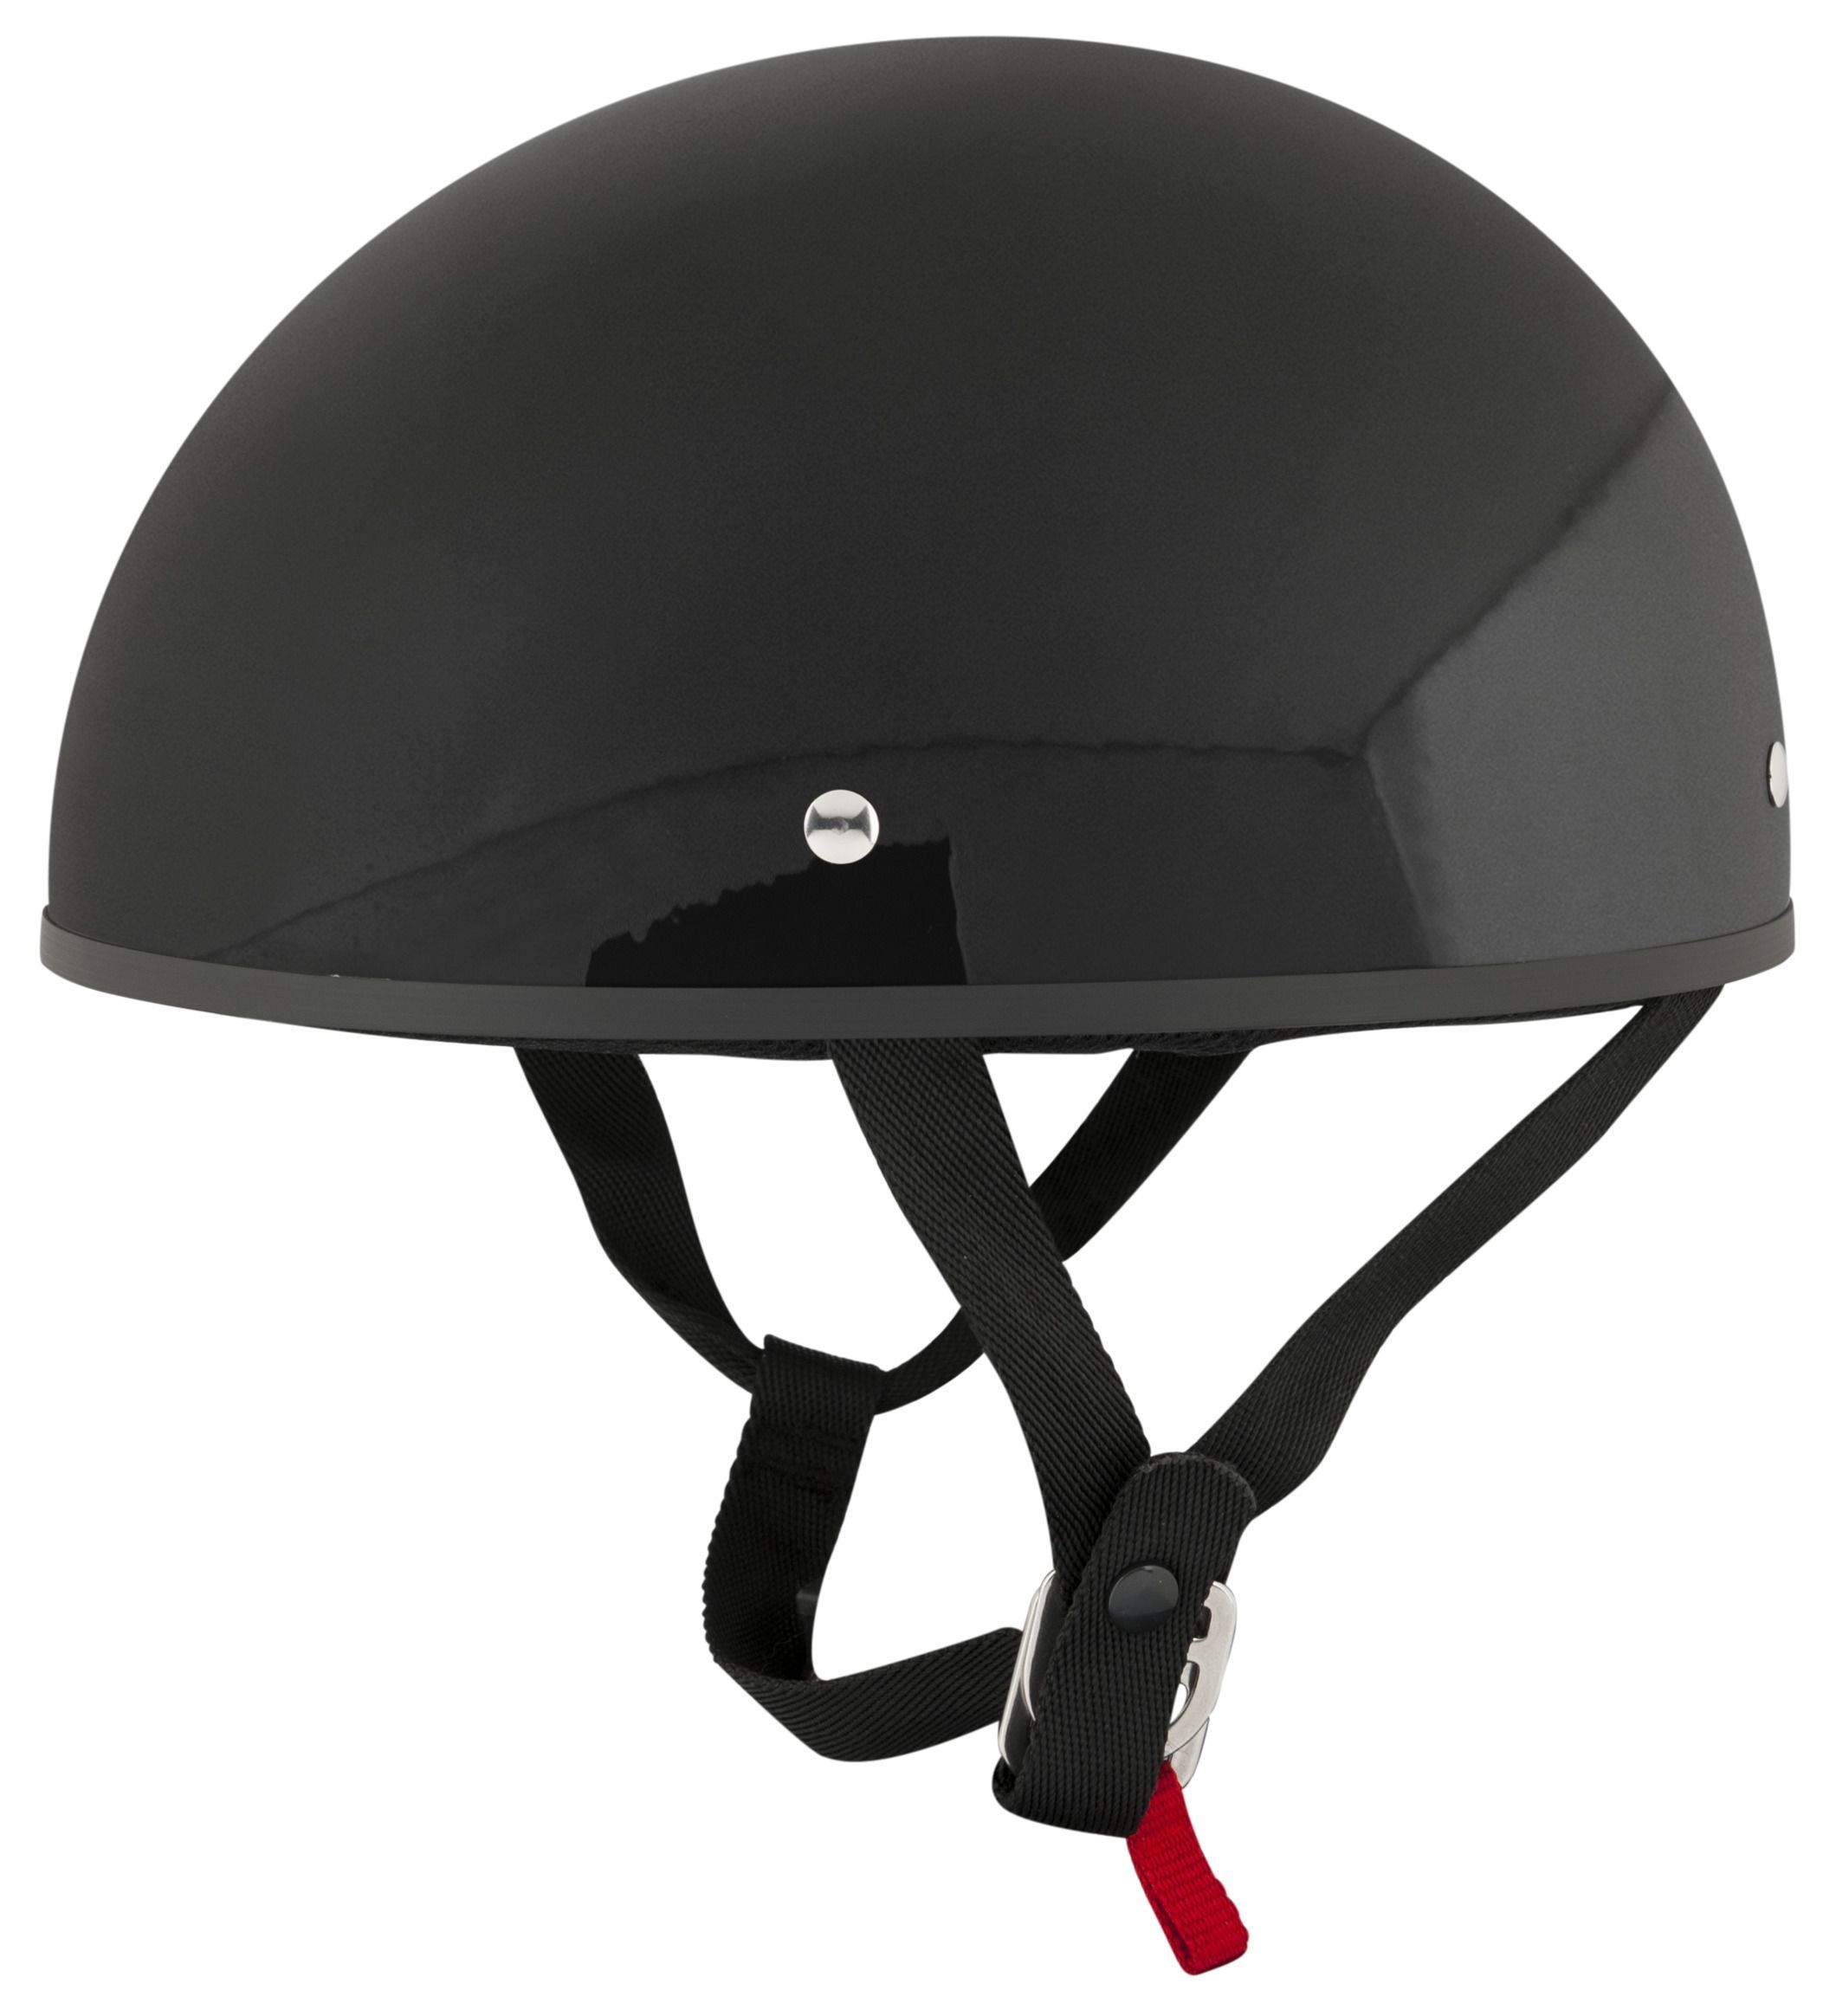 525db829 For the minimalist cruiser enthusiast, the Speed and Strength SS210 Solid  Speed Helmet is all you need. Classic pudding bowl style that meets DOT  standards, ...